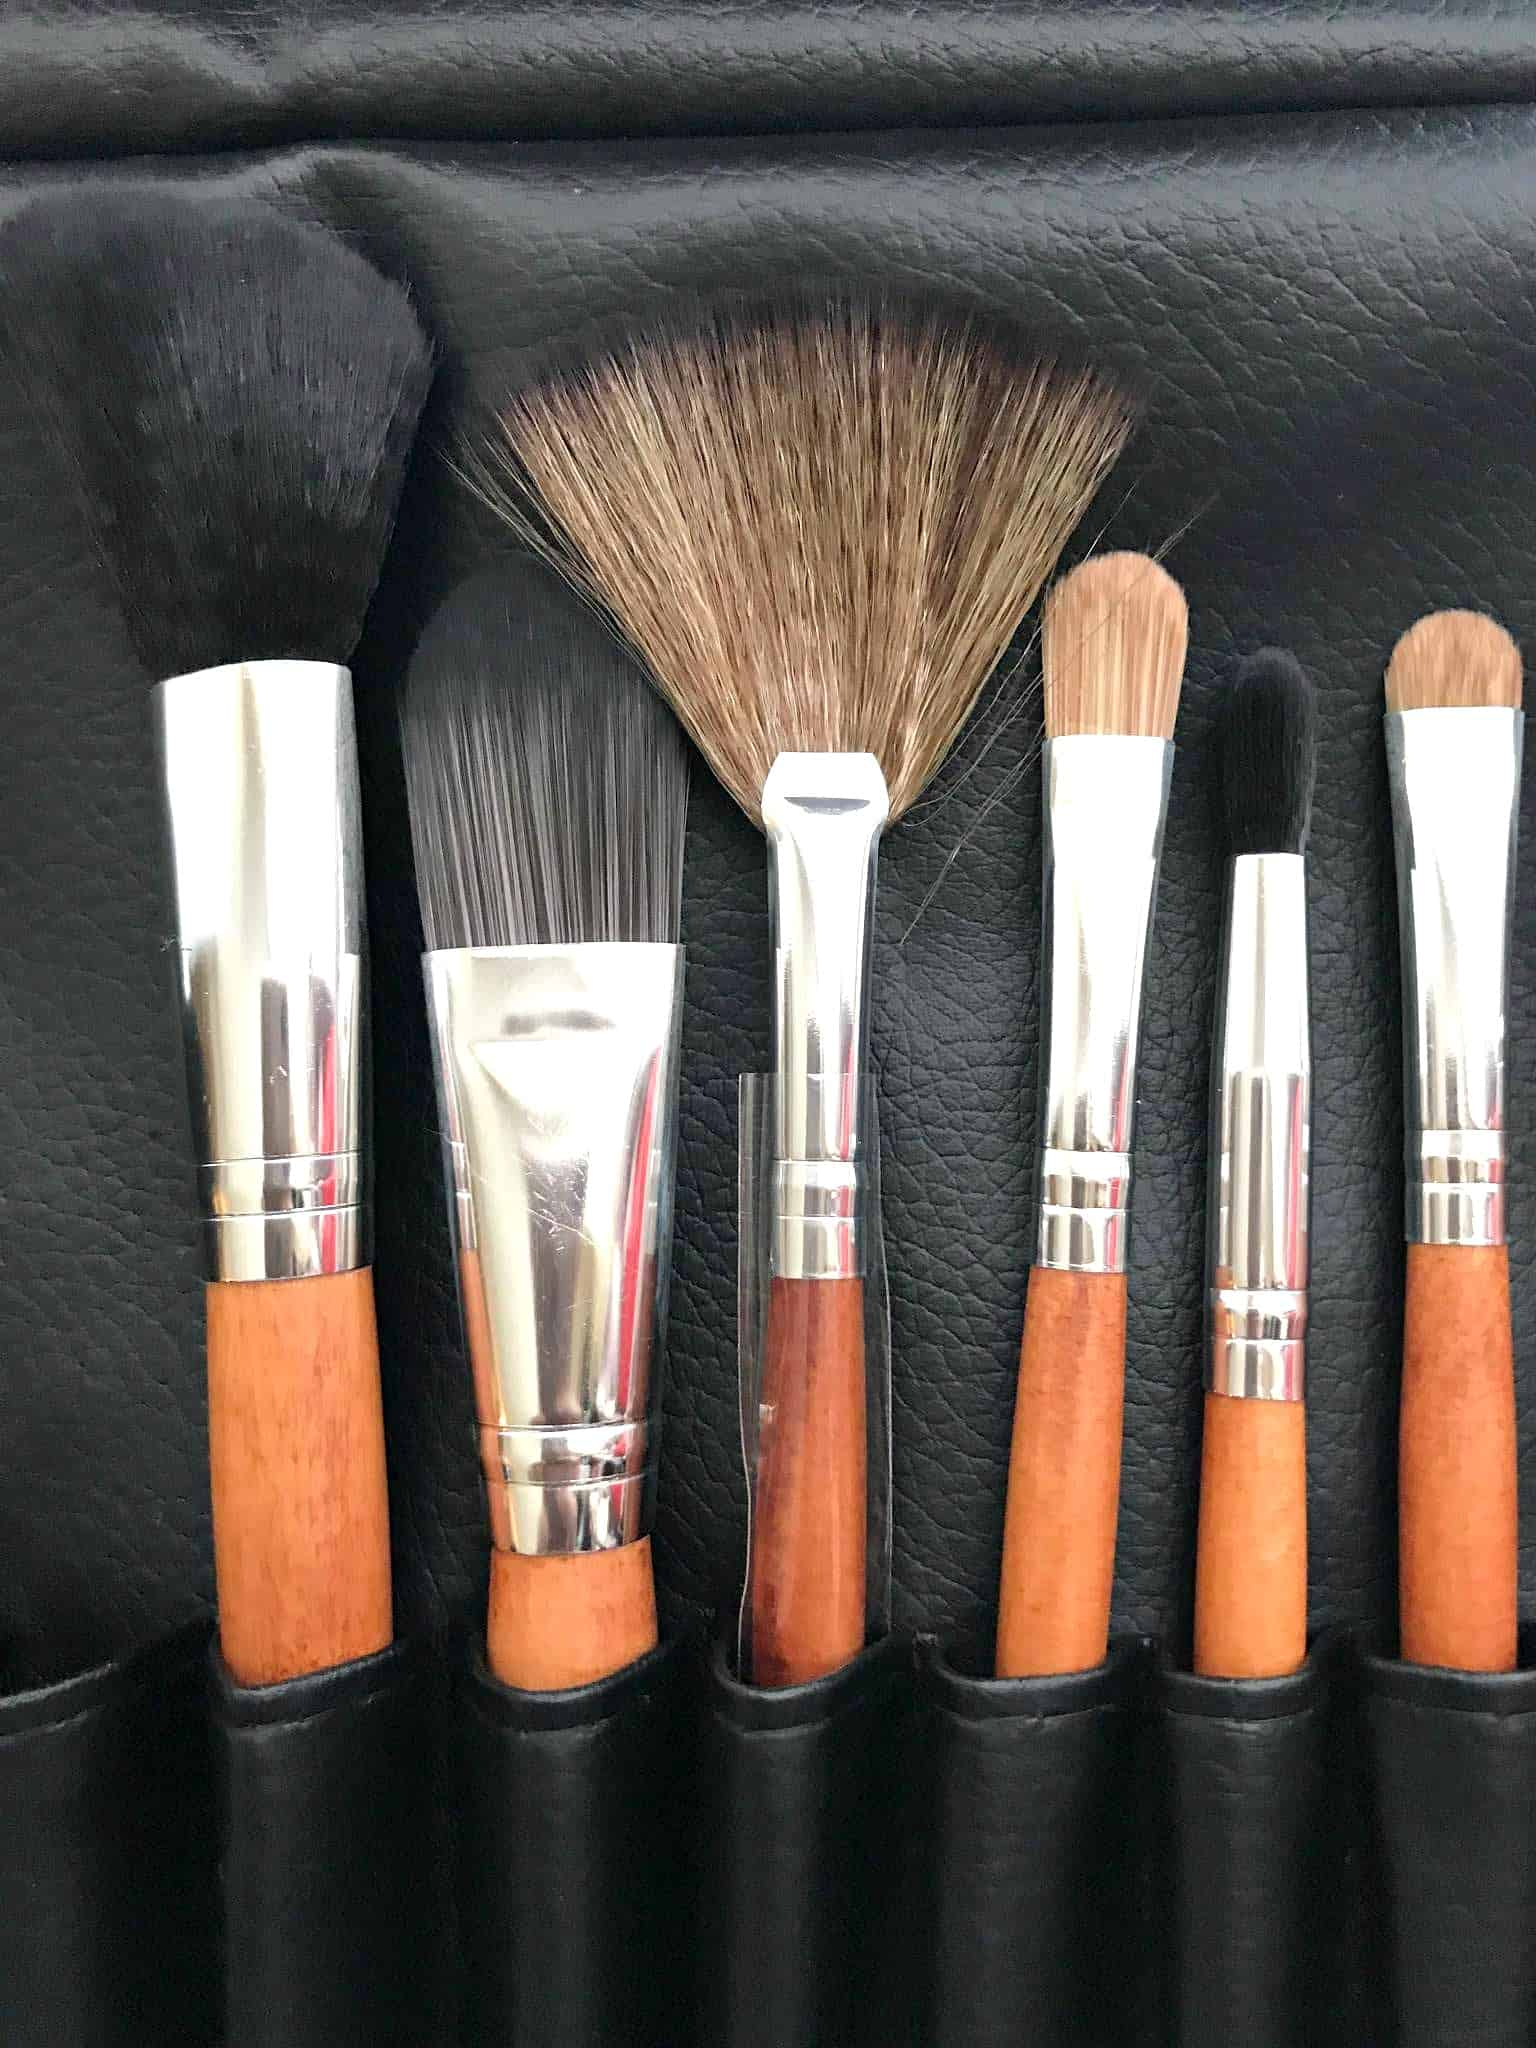 Vanity Planet Makeup Brush Collection + Vibrating Flat Iron